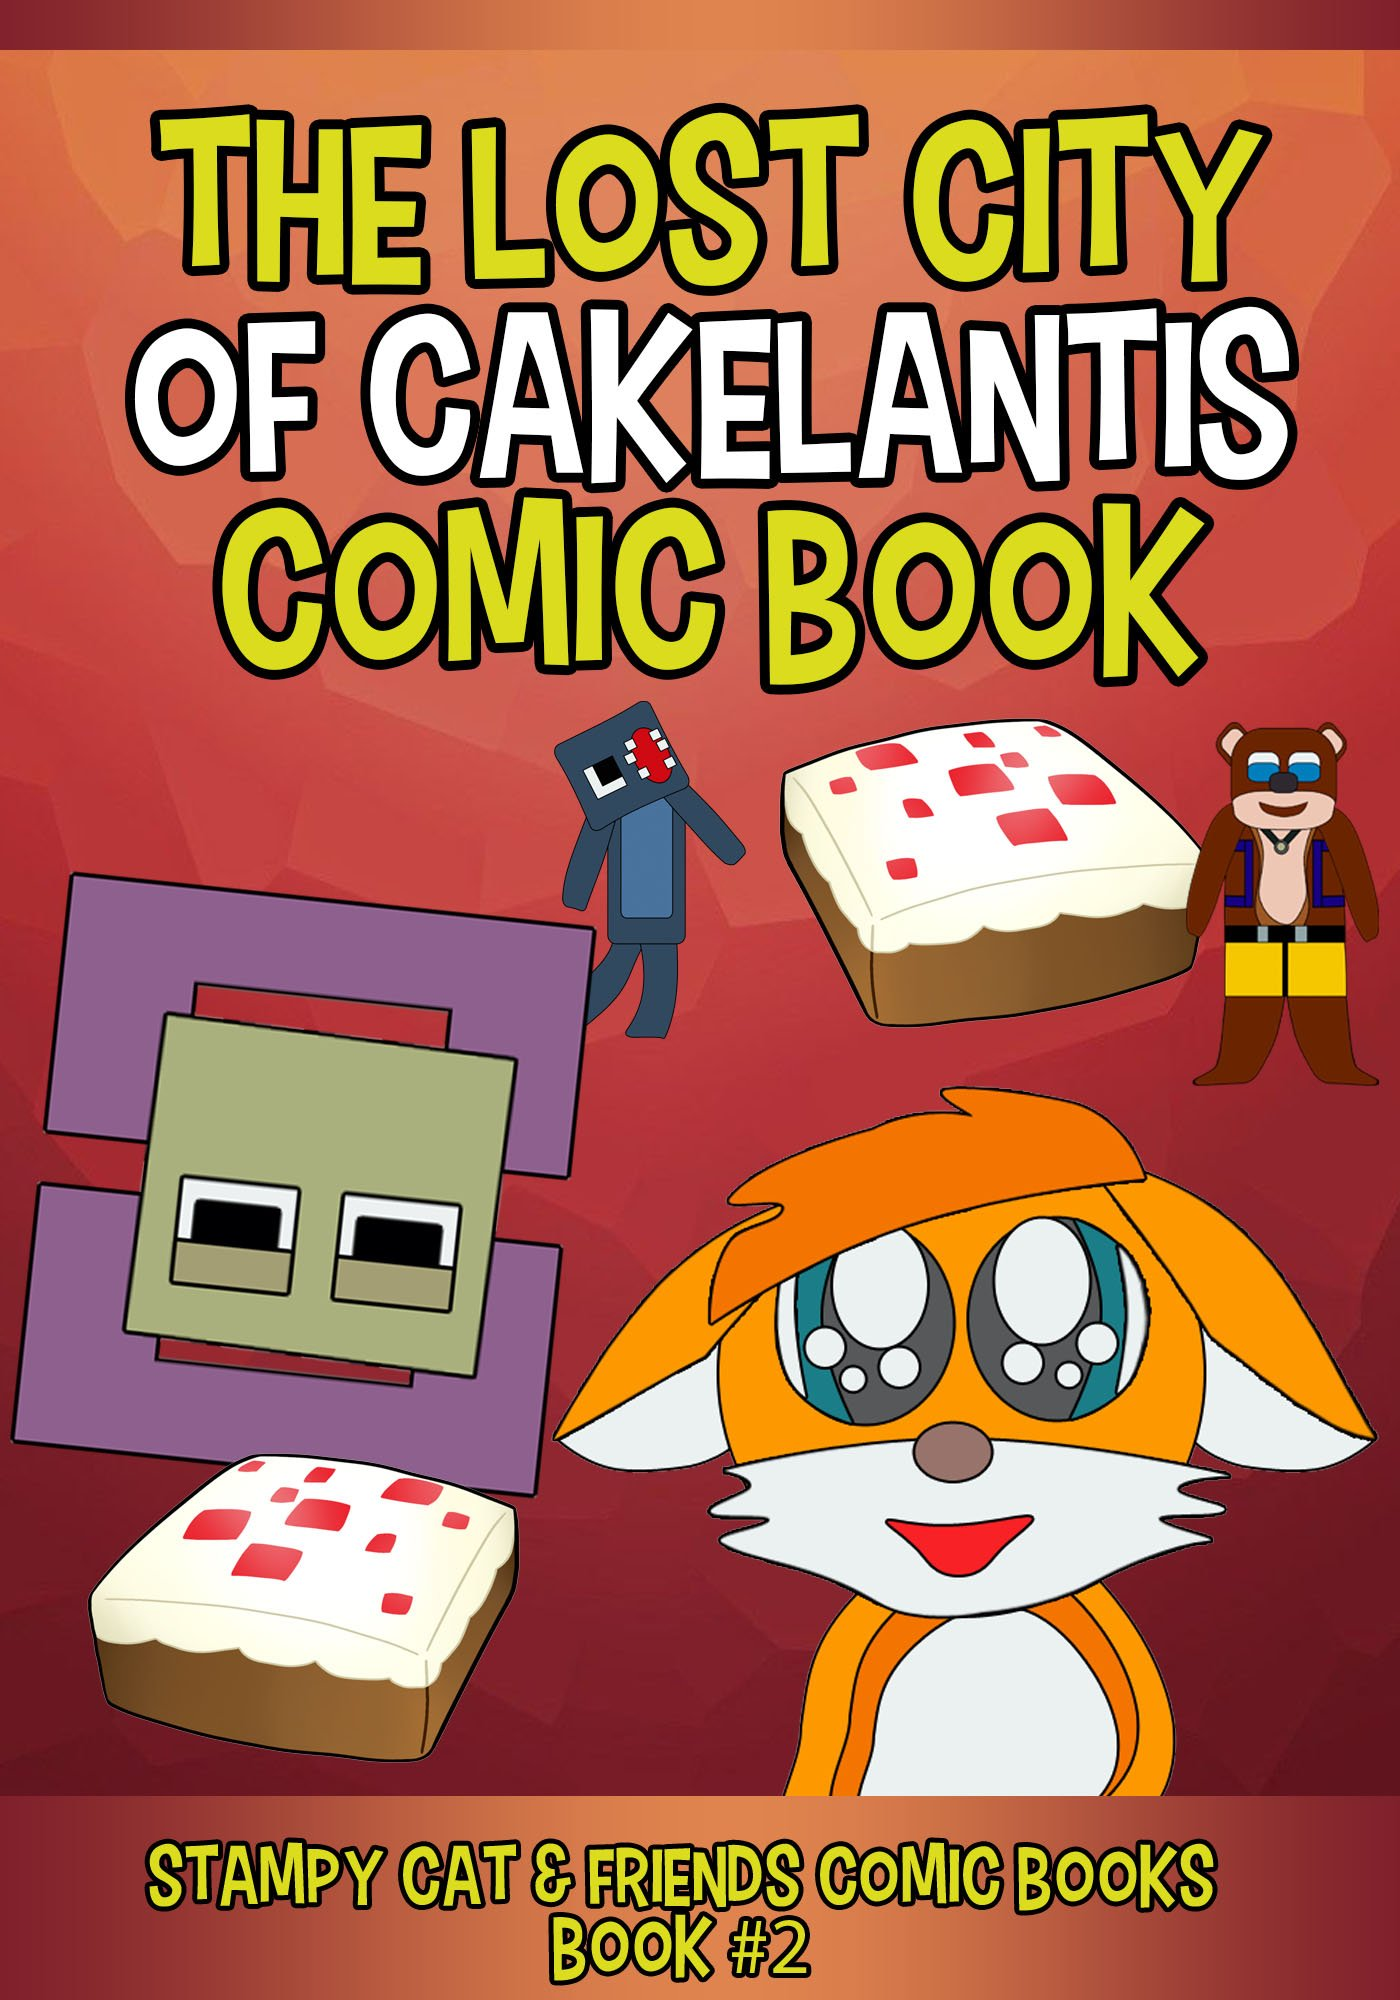 Reviews: Stampy Cat Comics: The Lost City of Cakelantis